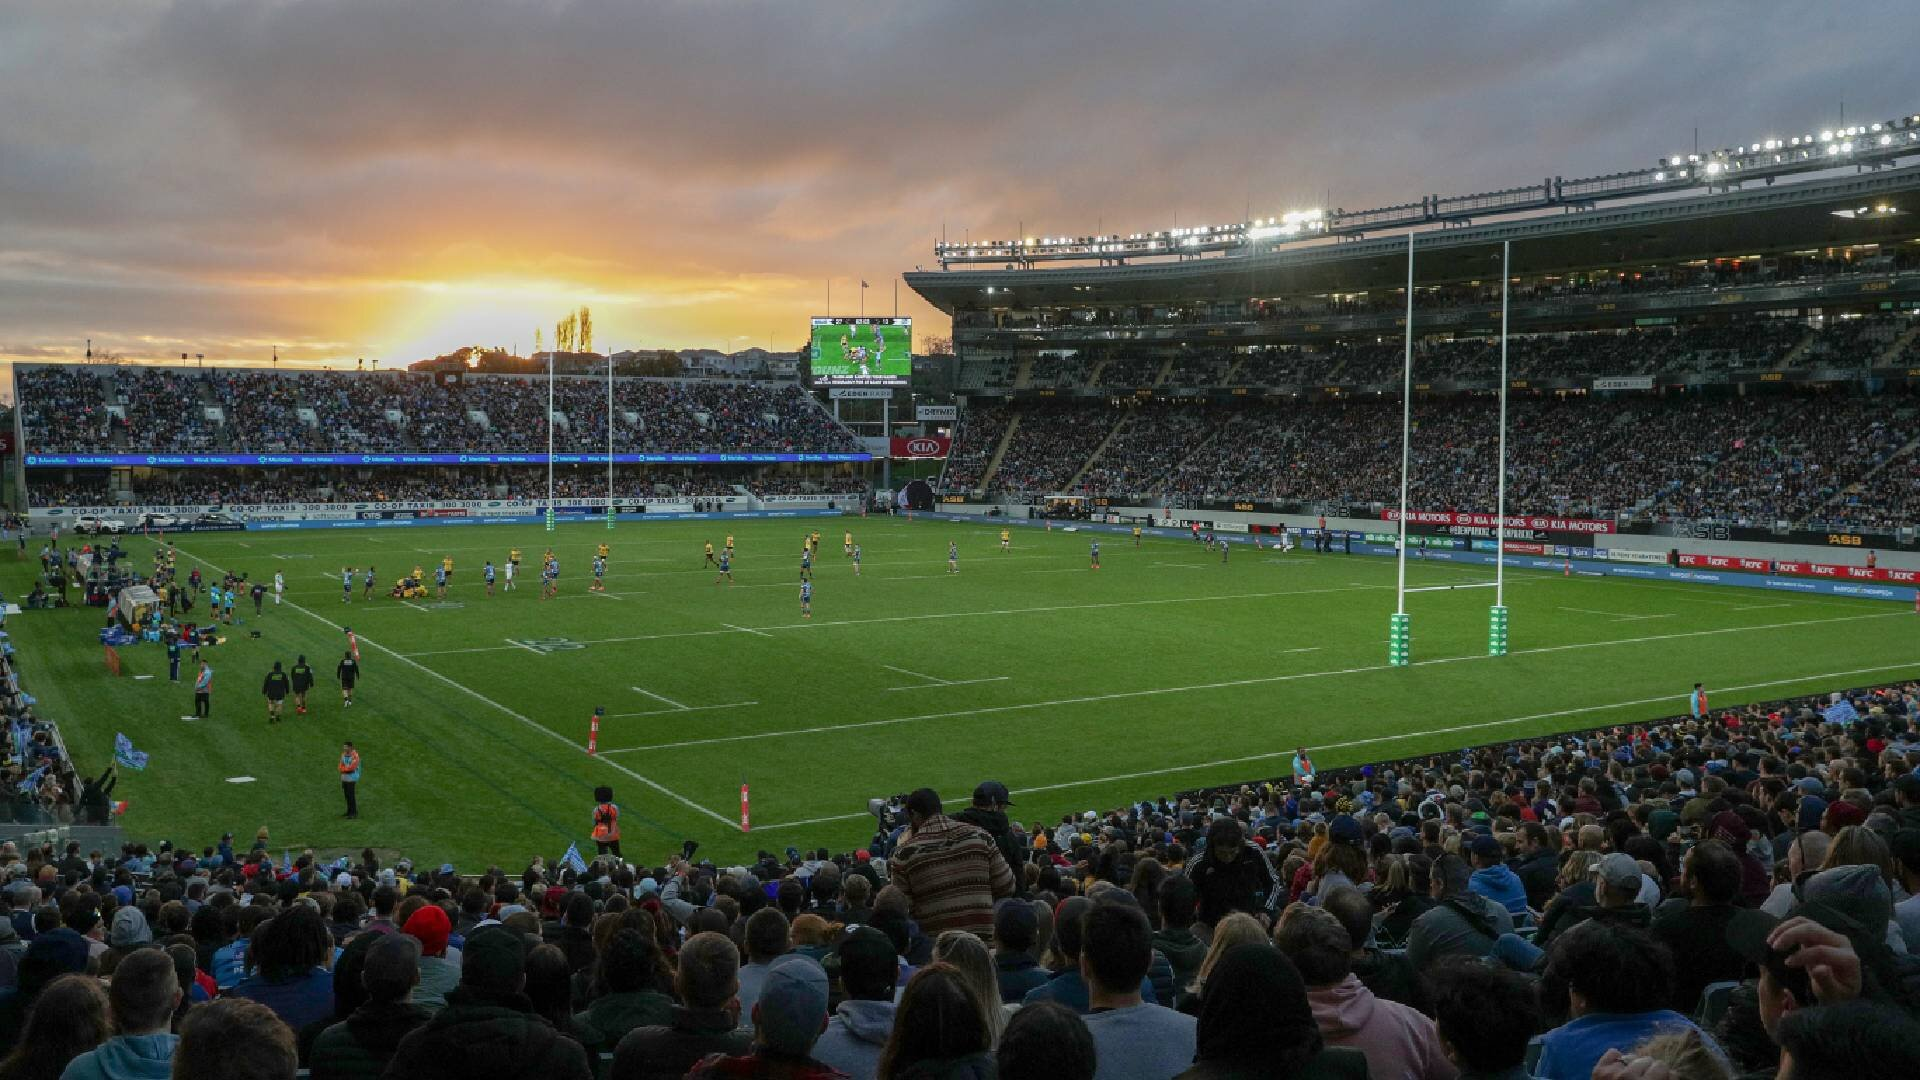 Locked in: Eden Park confirmed to host second Bledisloe Cup match following relaxed COVID-19 restrictions